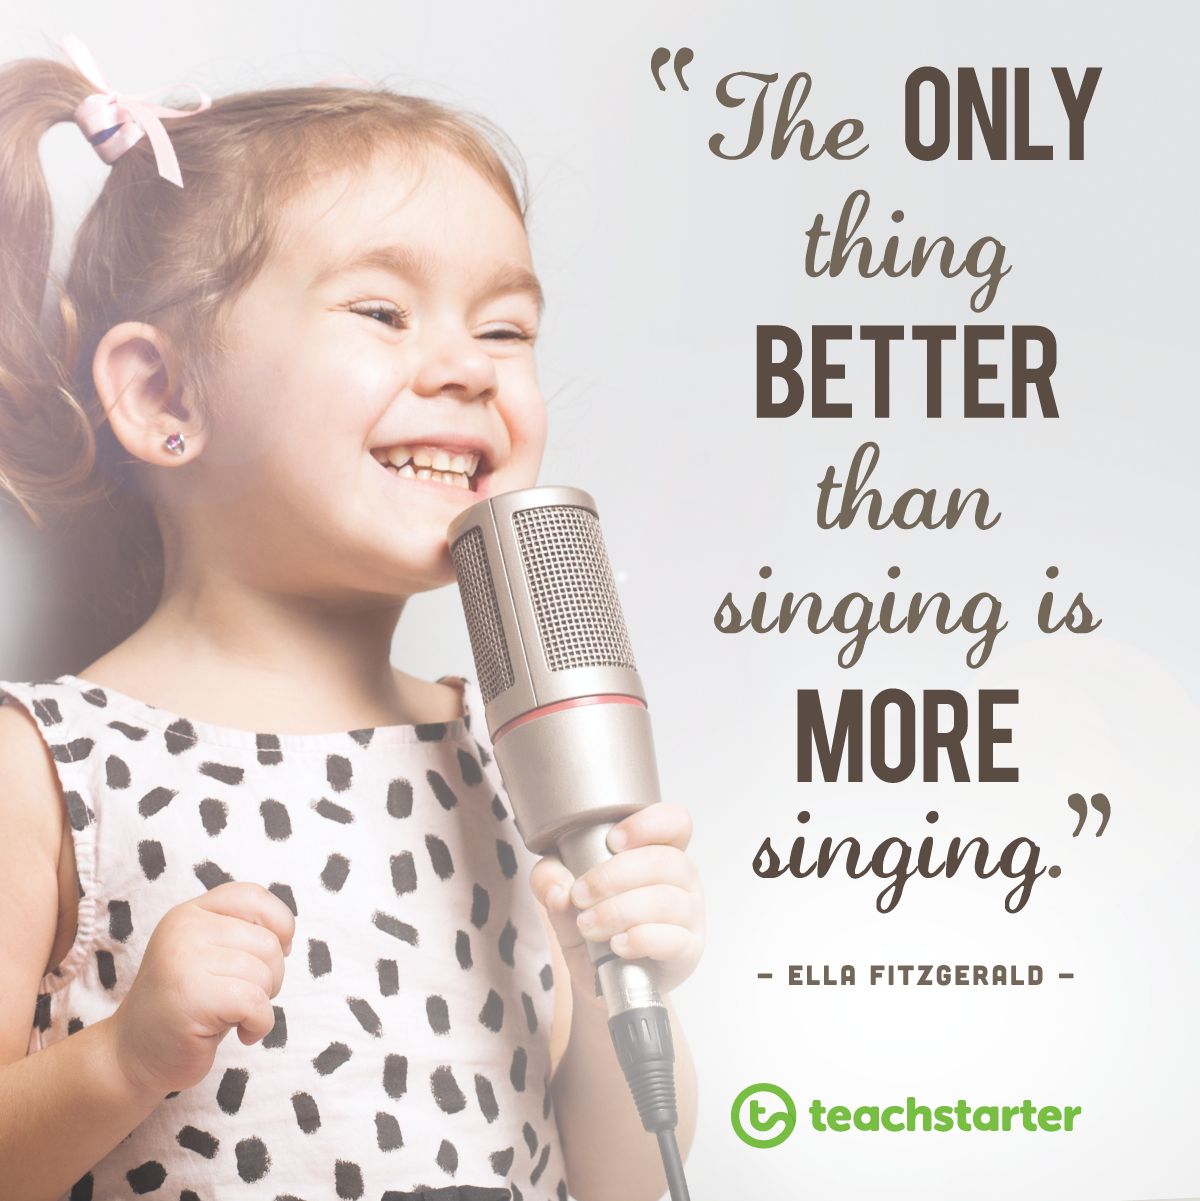 'the only thing b etter than singing is more singing' quote beside image of a young girl with a microphone